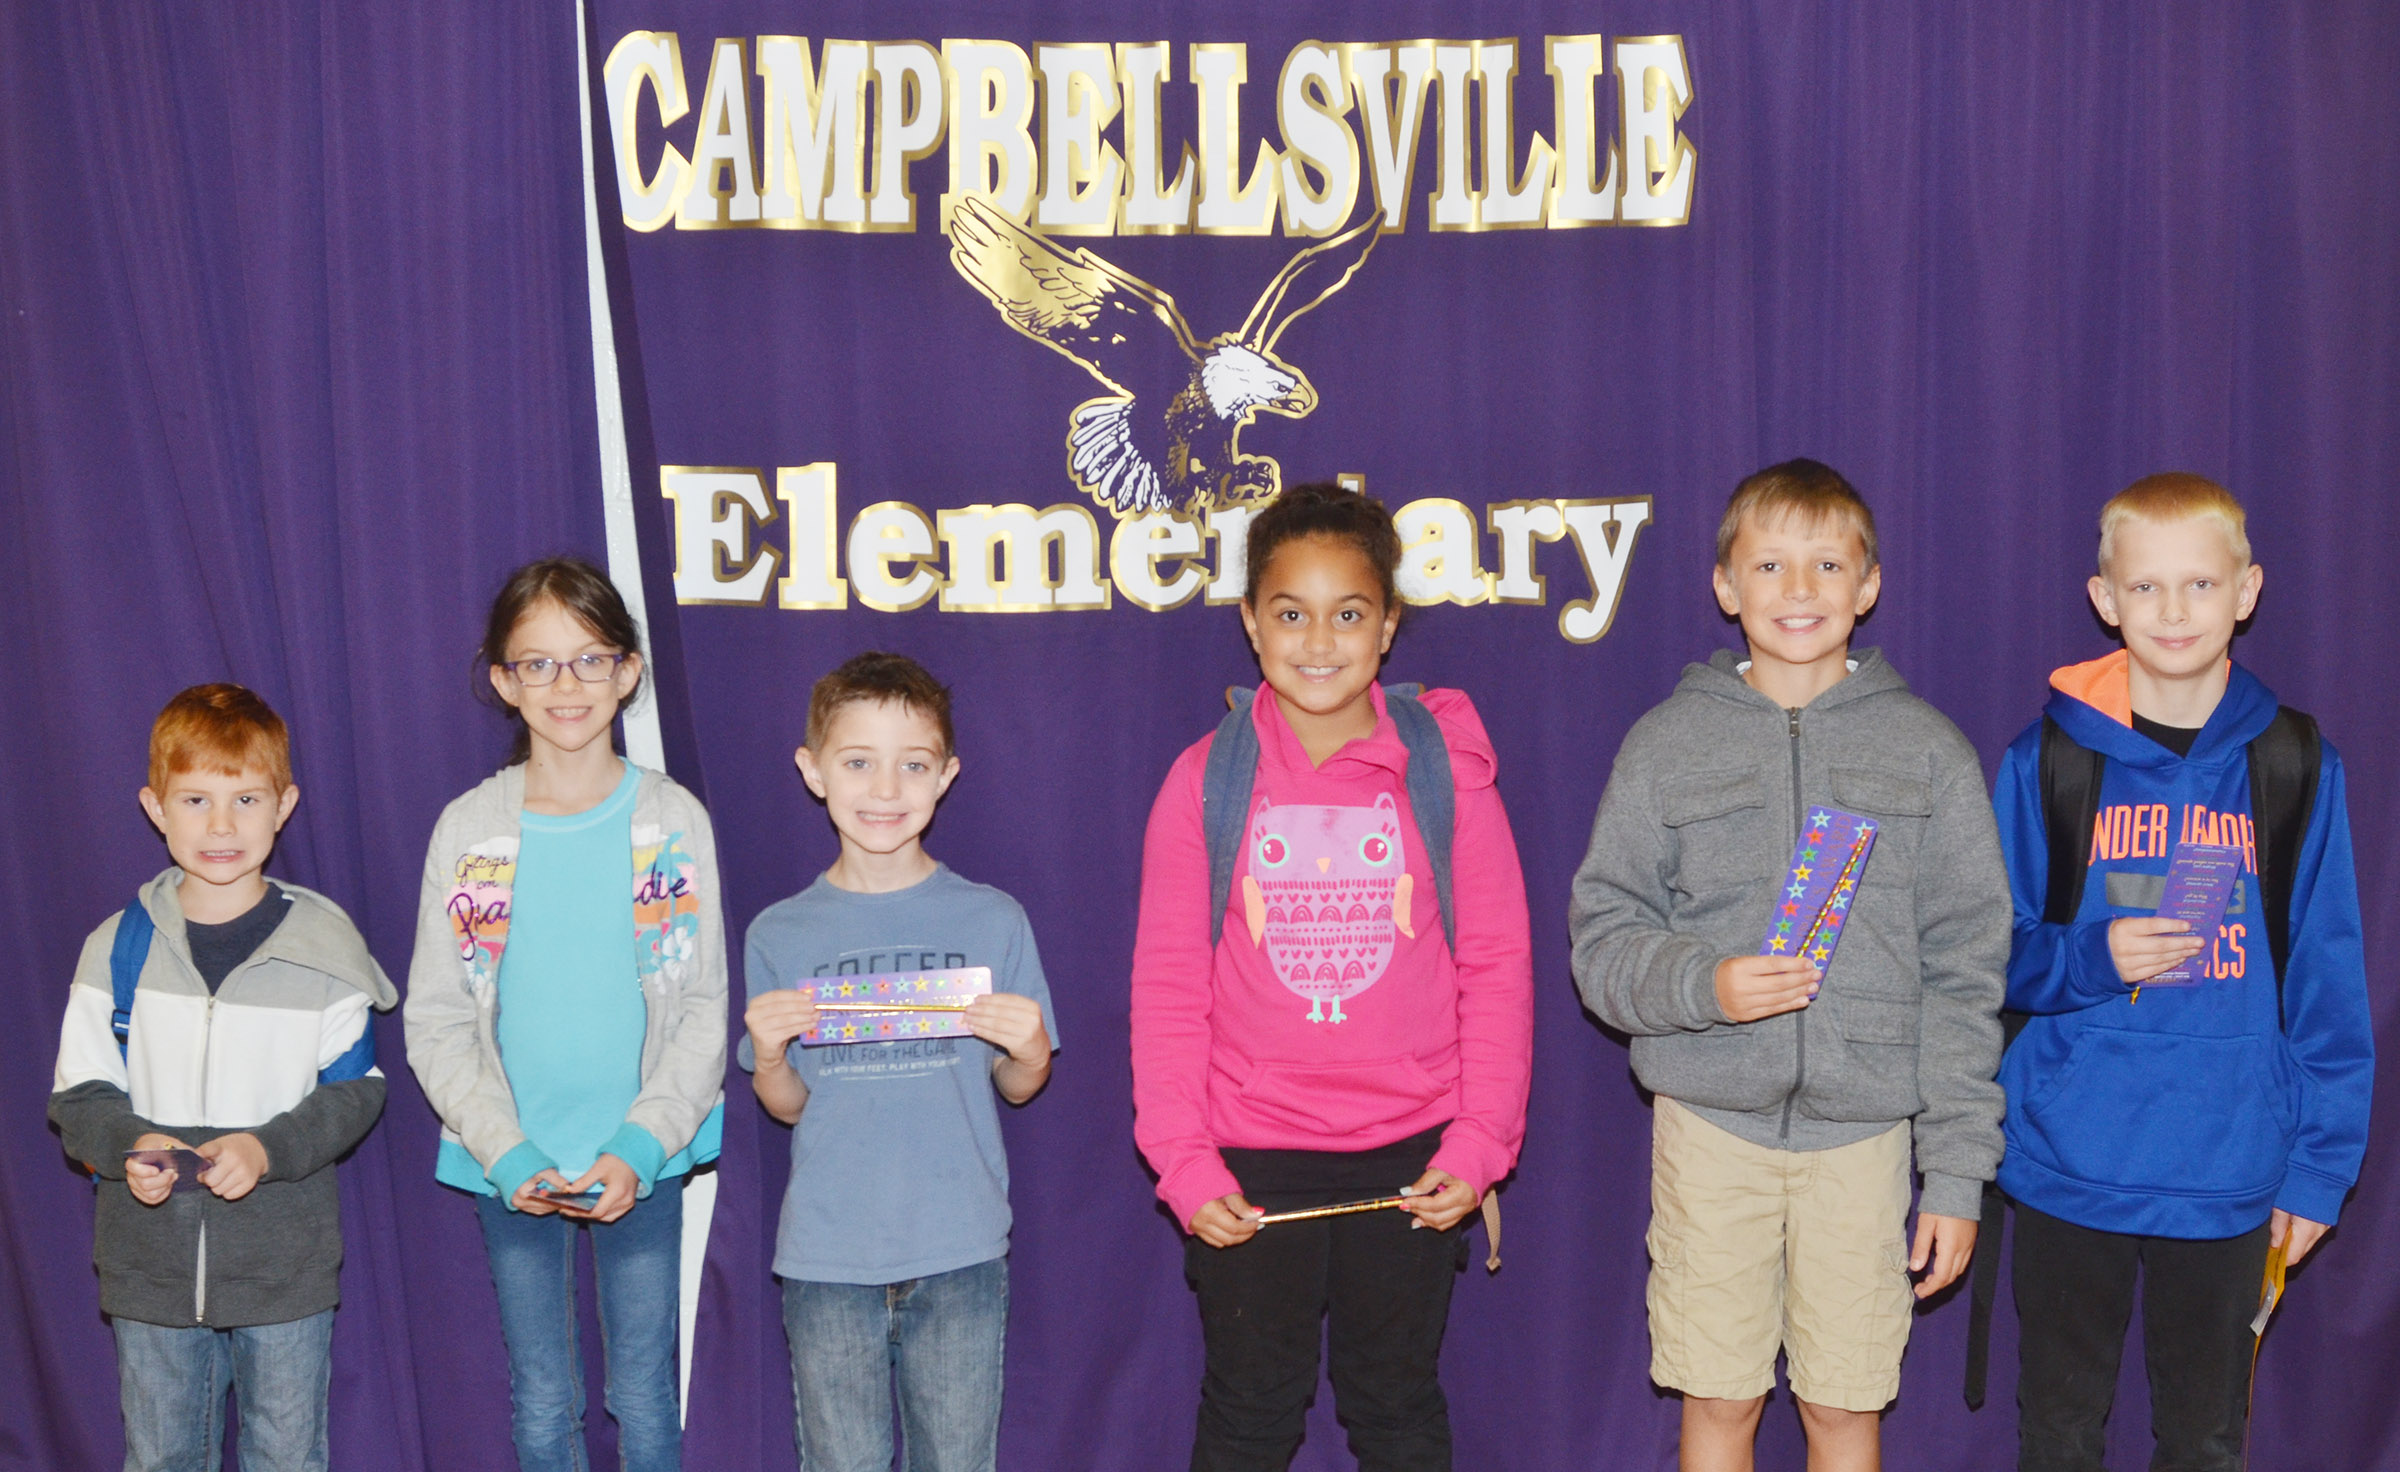 From left are kindergartener Kennon Dotson, third-grader Lilly Wise, first-grader Caleb Goodson, second-grader Maleigha Travis, fourth-grader Cameron Taylor and fifth-grader Bronson Cox.